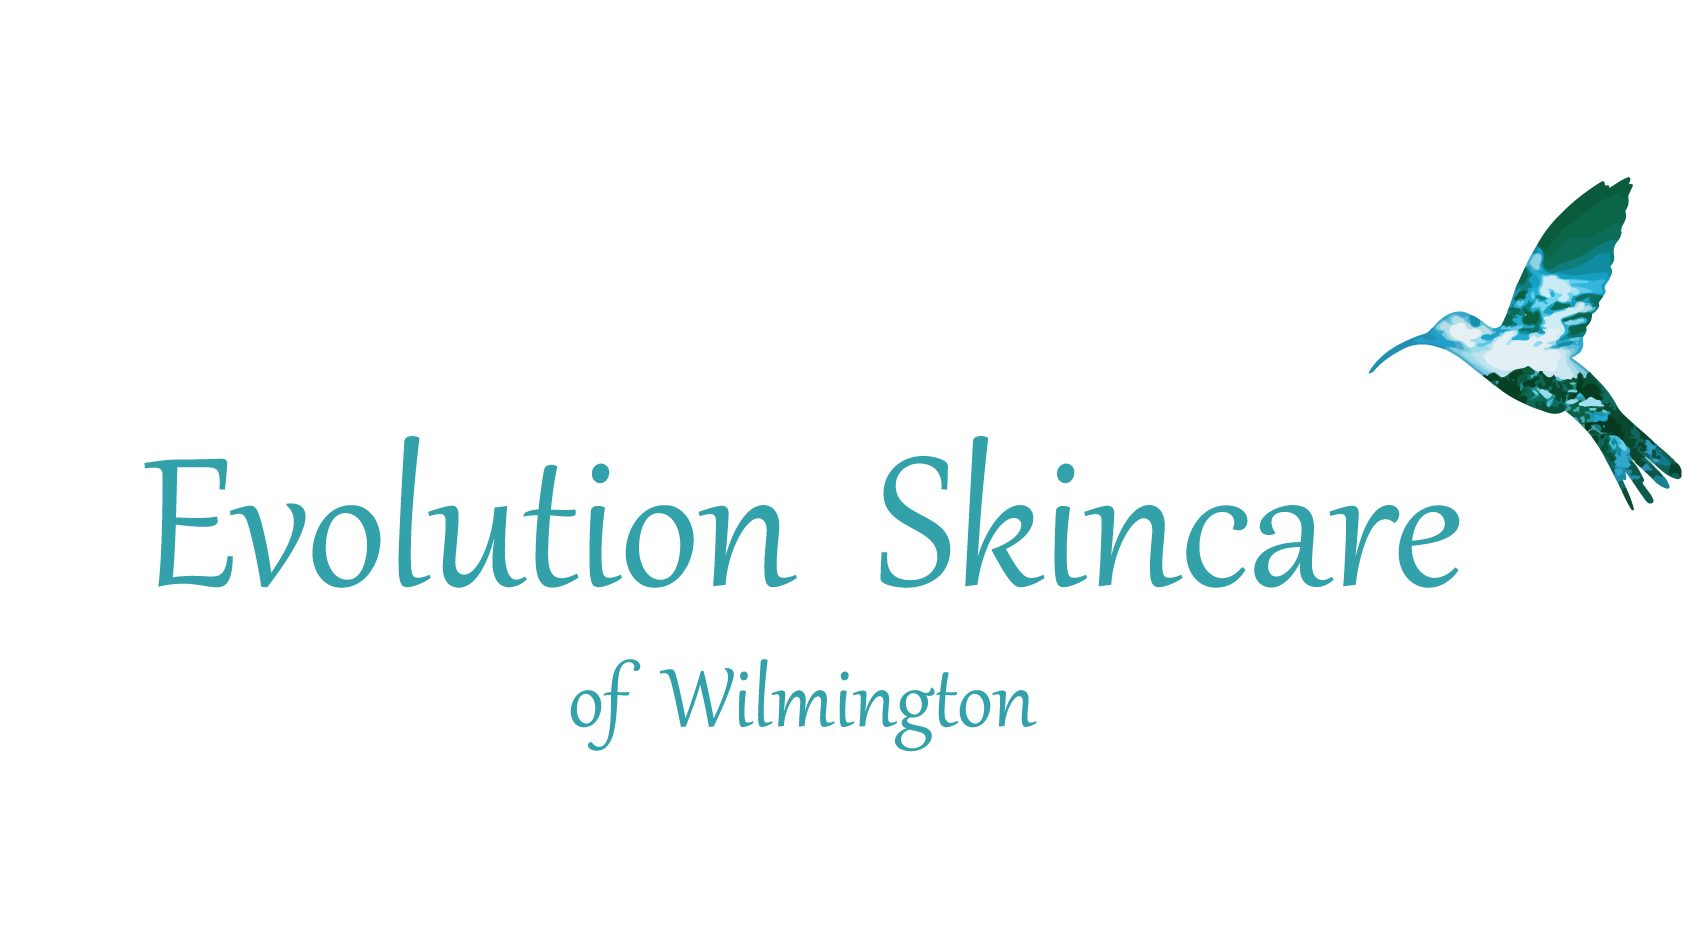 Evolution Skincare of Wilmington